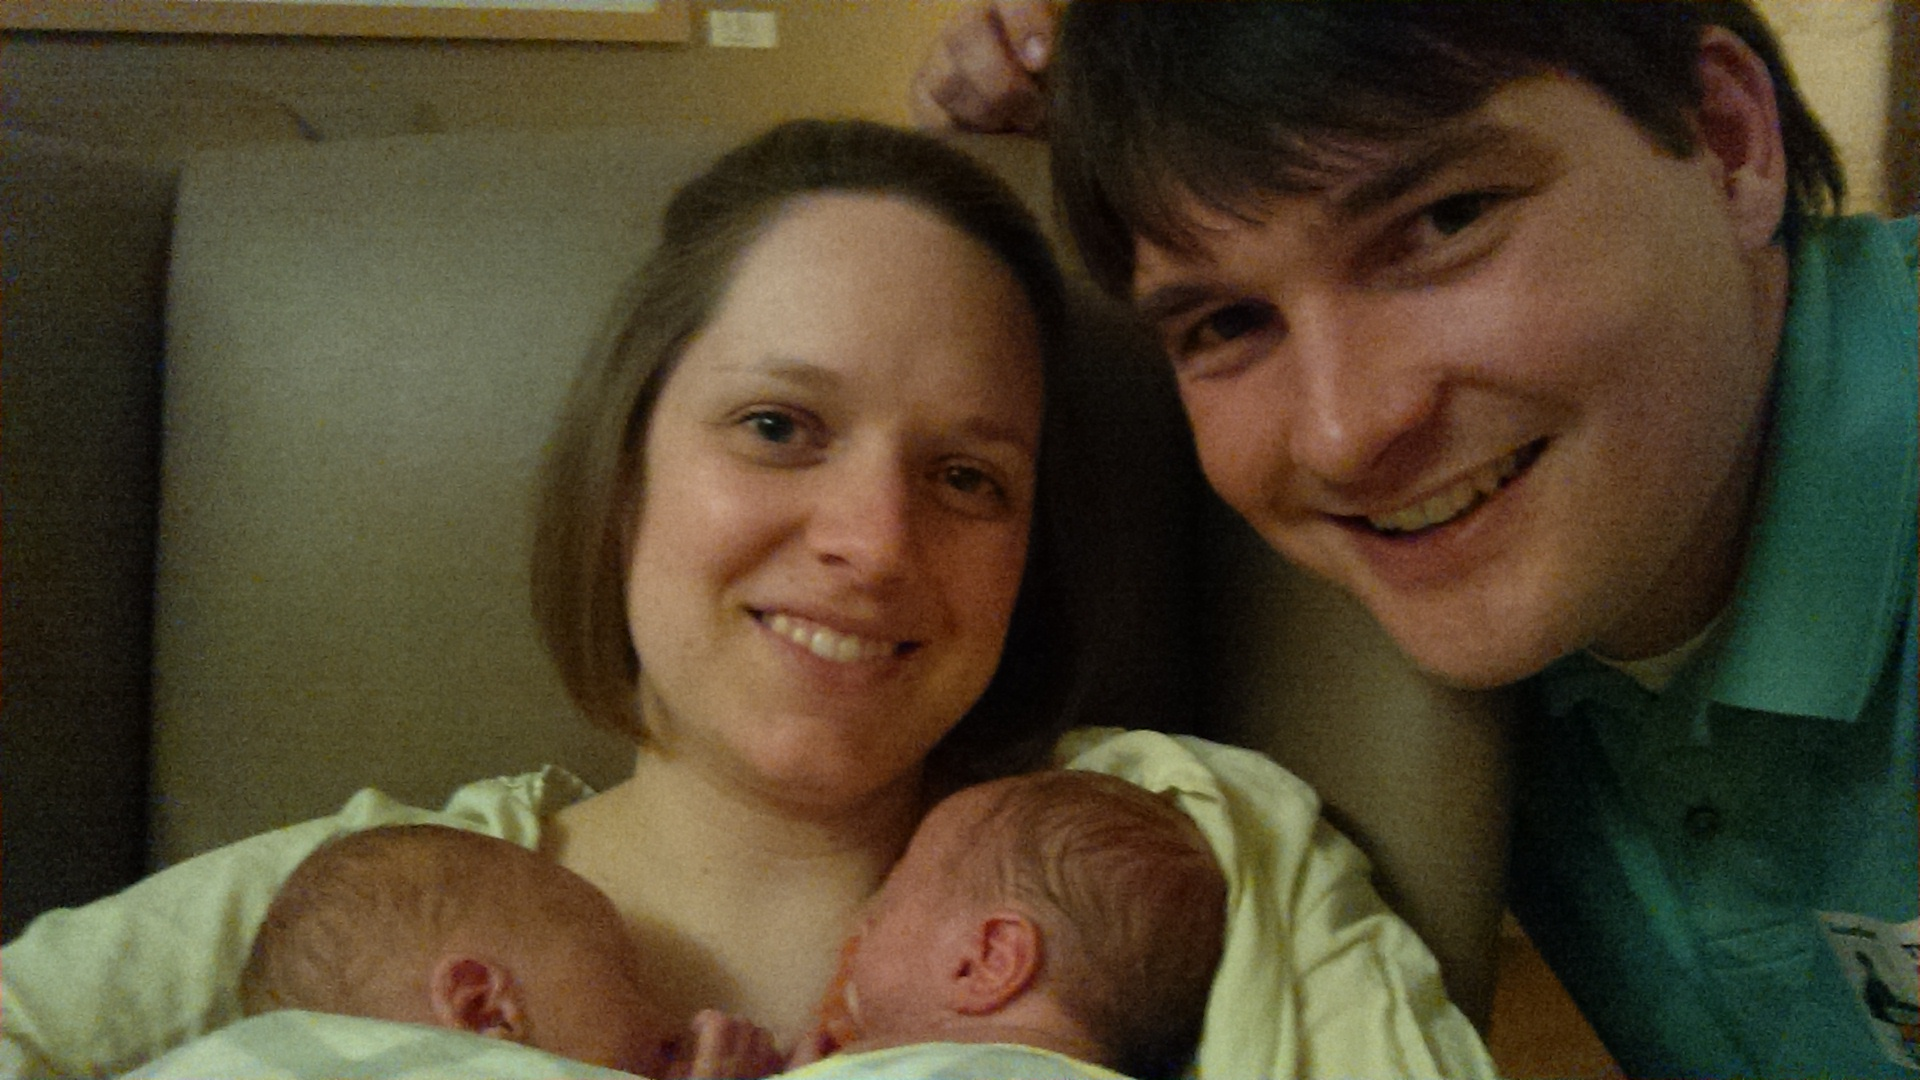 Family photo in the NICU